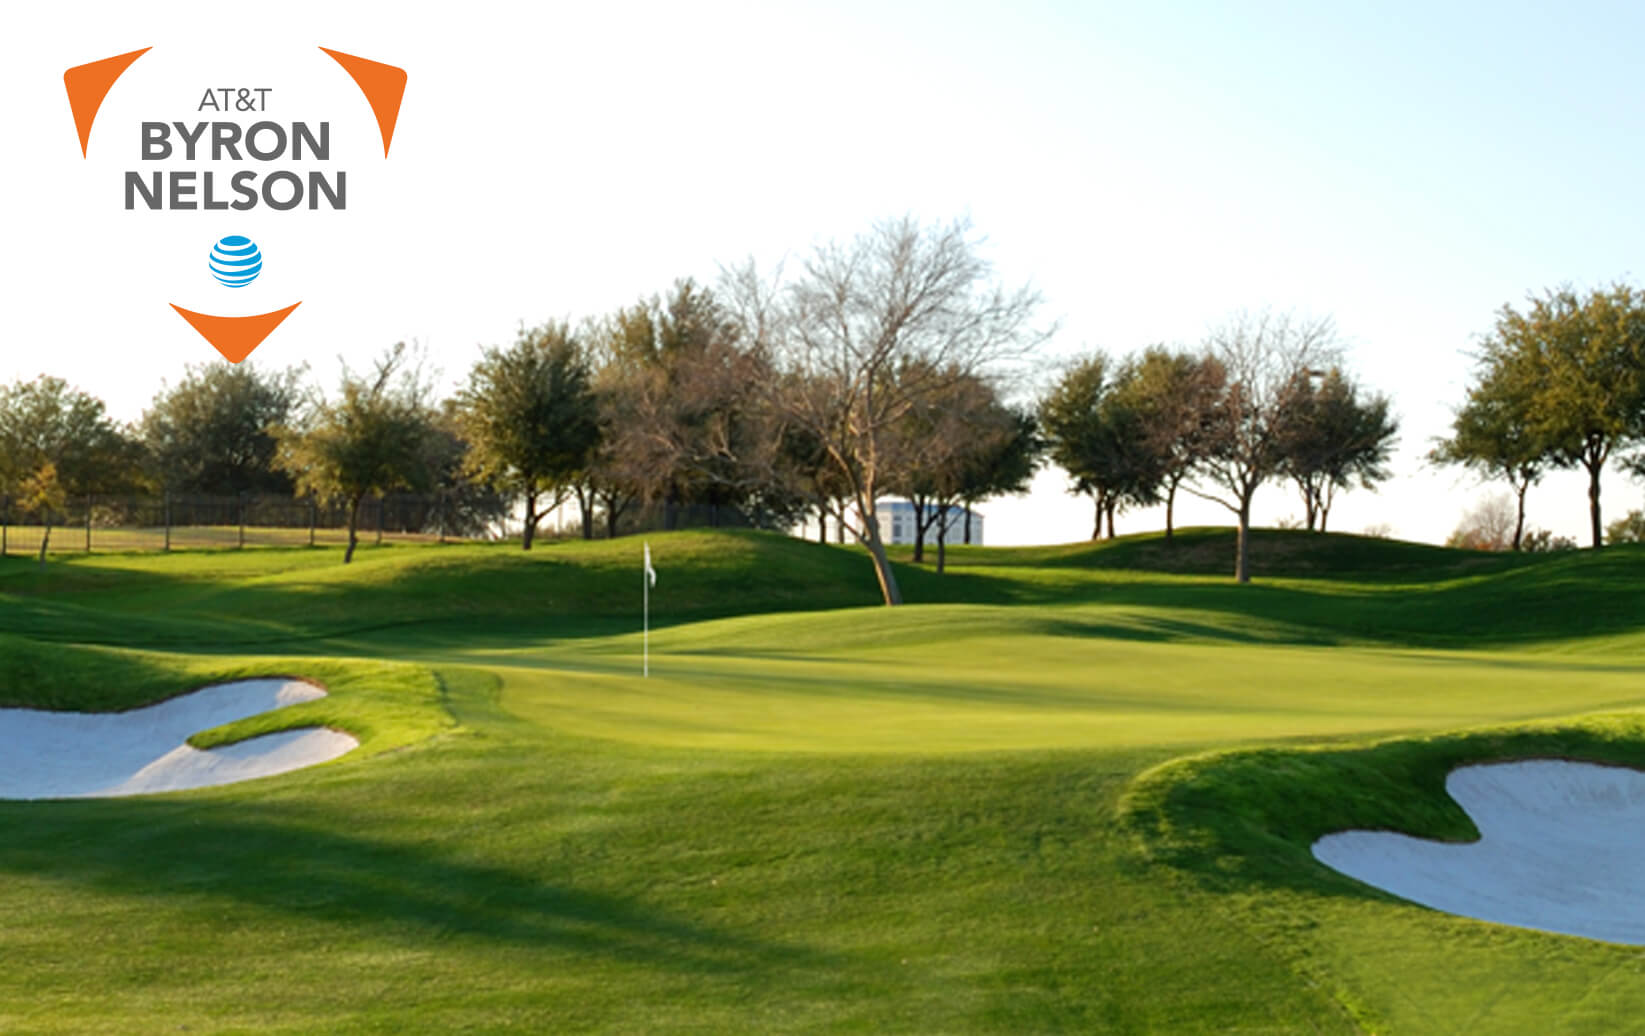 *UPDATE* Change of Venue - AT&T Byron Nelson Pre-Qualifying and Open Qualifying